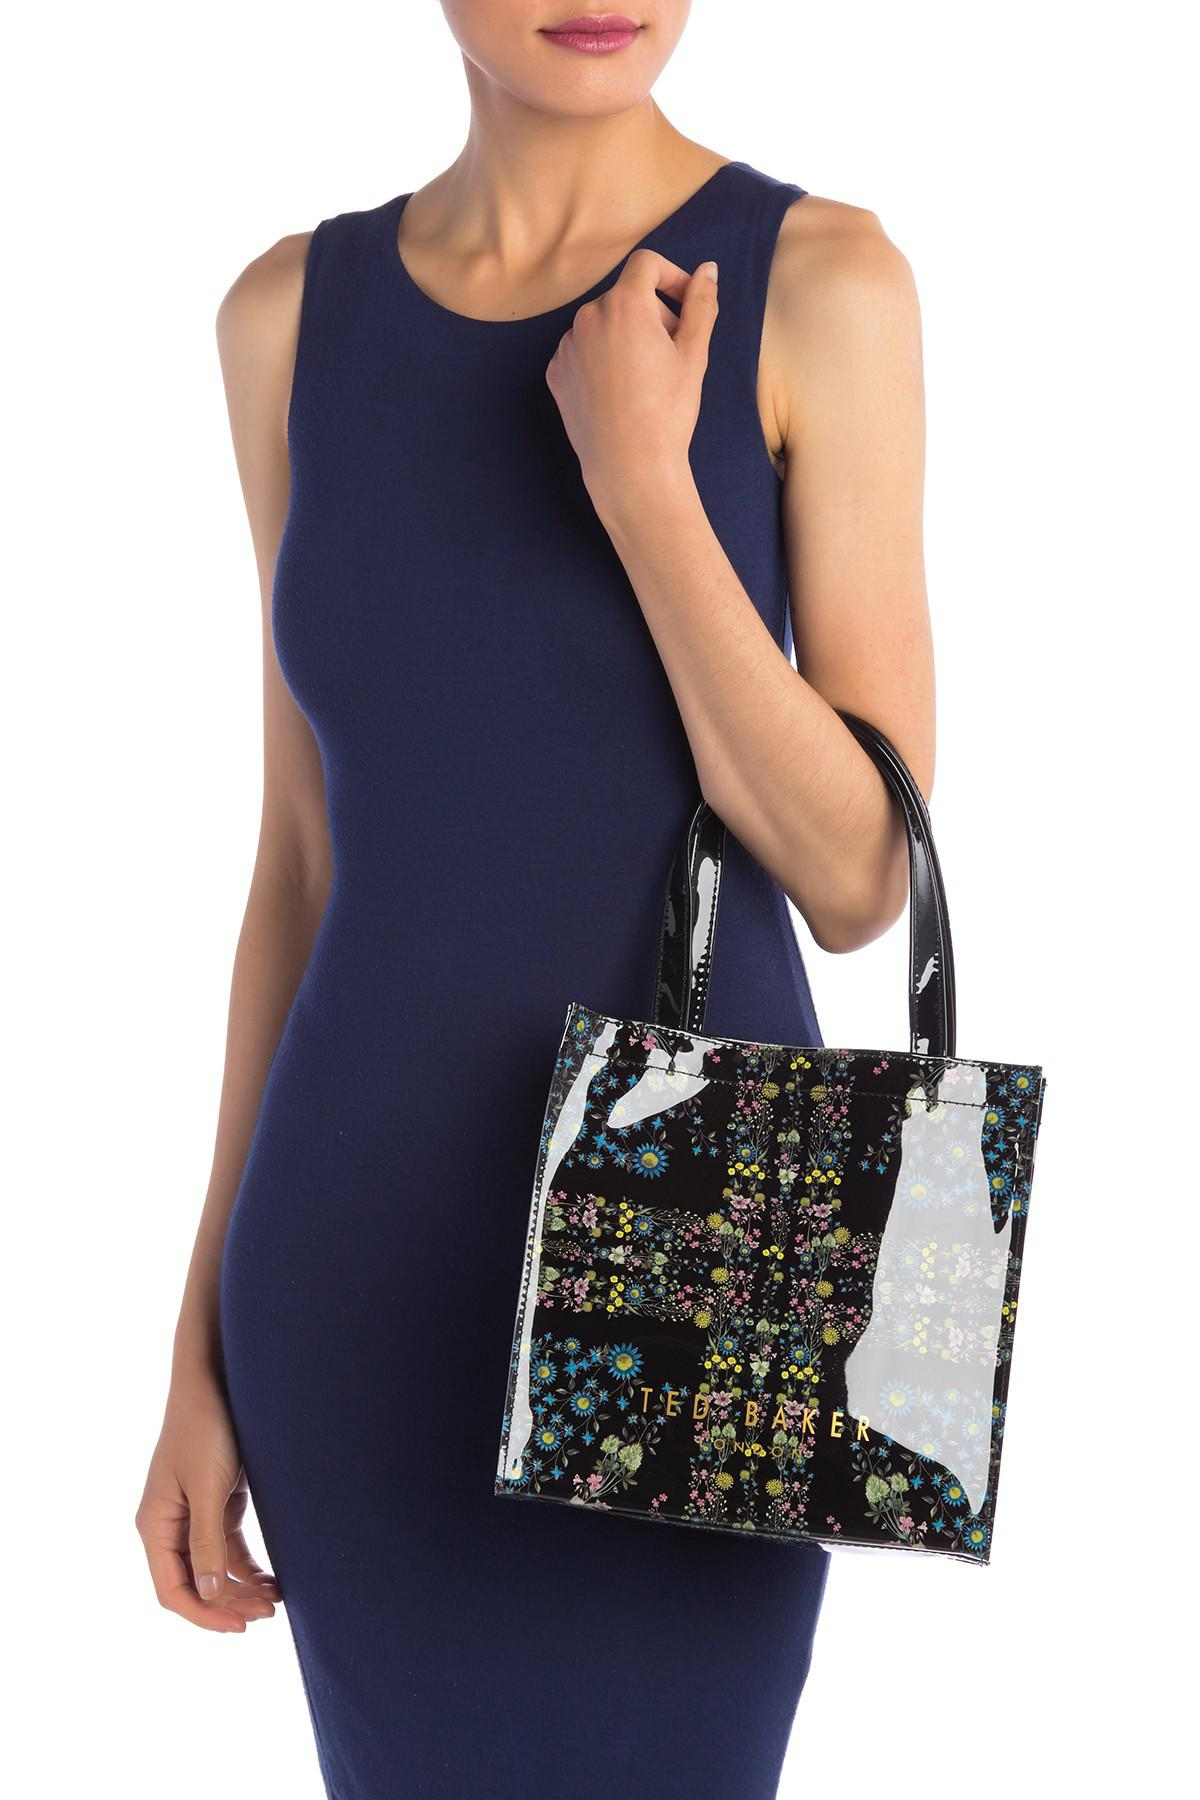 491be7d0d Lyst - Ted Baker Selcon Unity Flag Small Icon Bag in Black